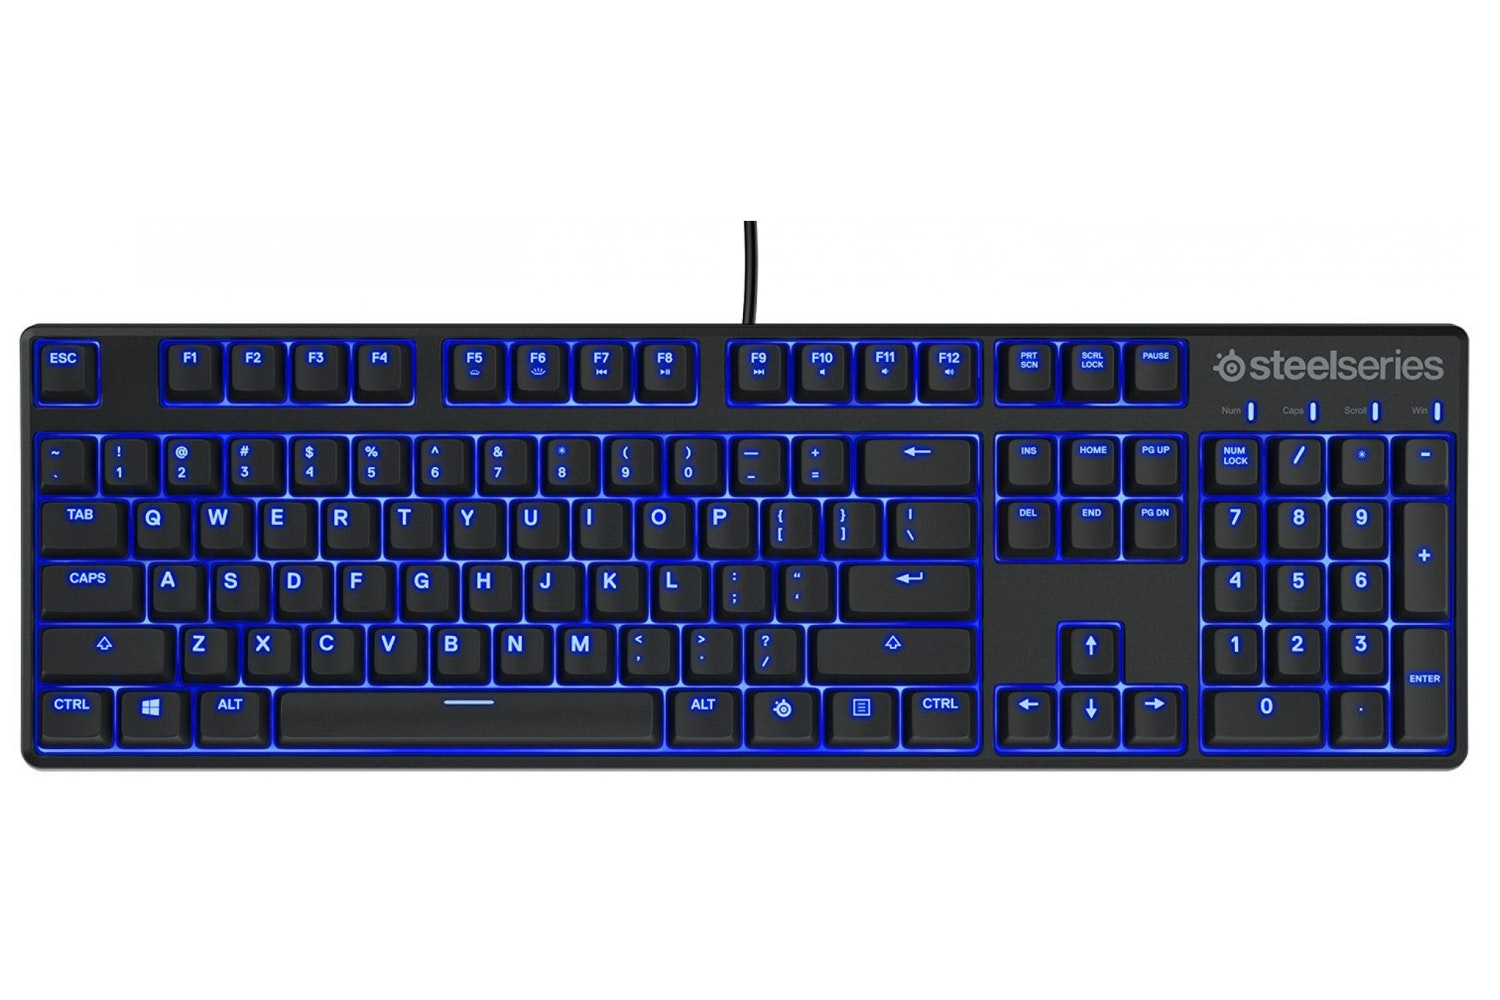 SteelSeries Apex M400 Mechanical Gaming Keyboard